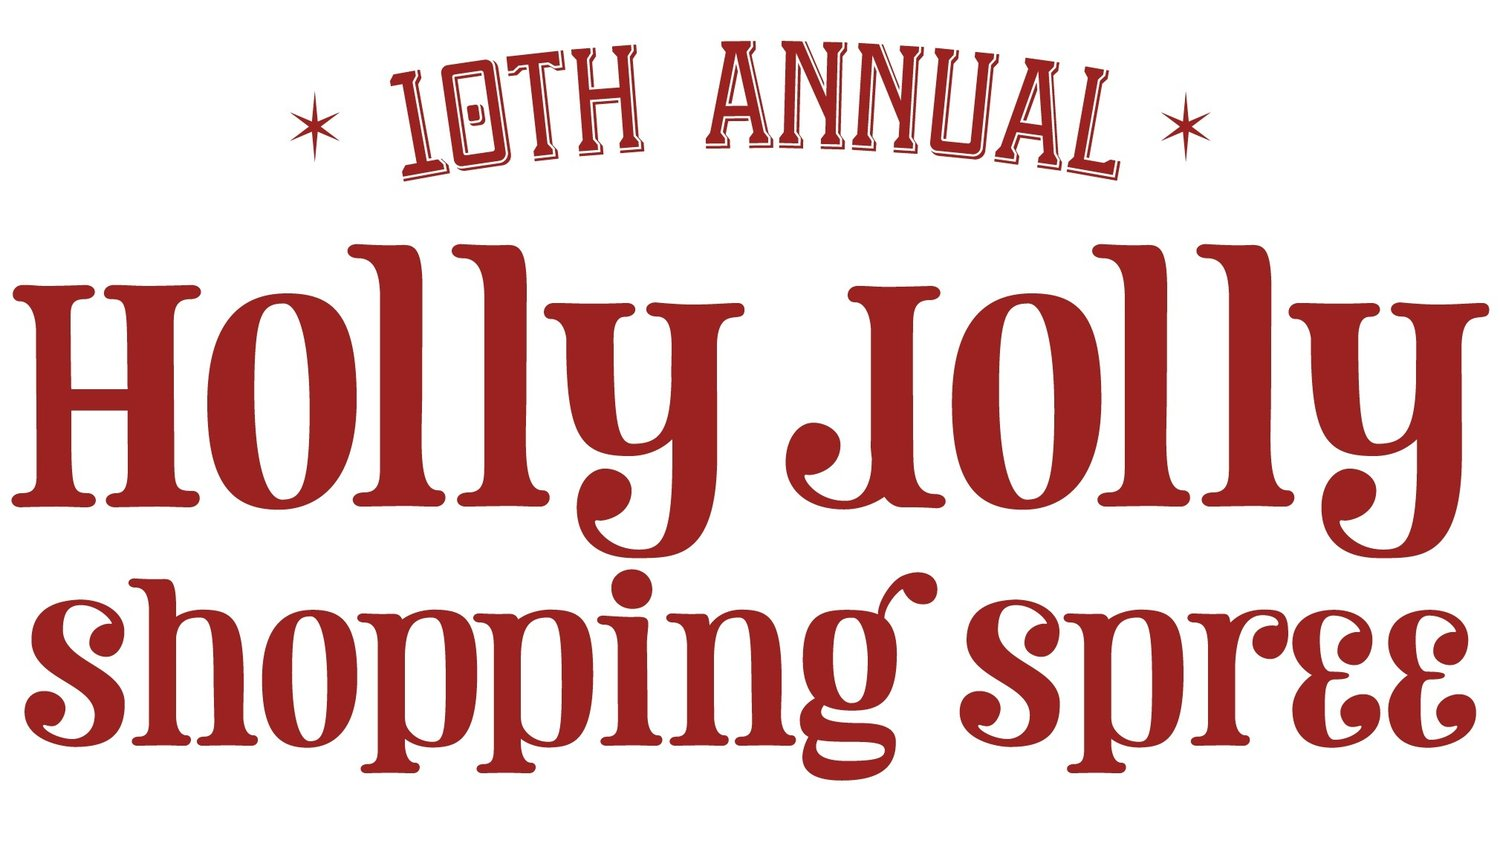 Holly Jolly Shopping Spree